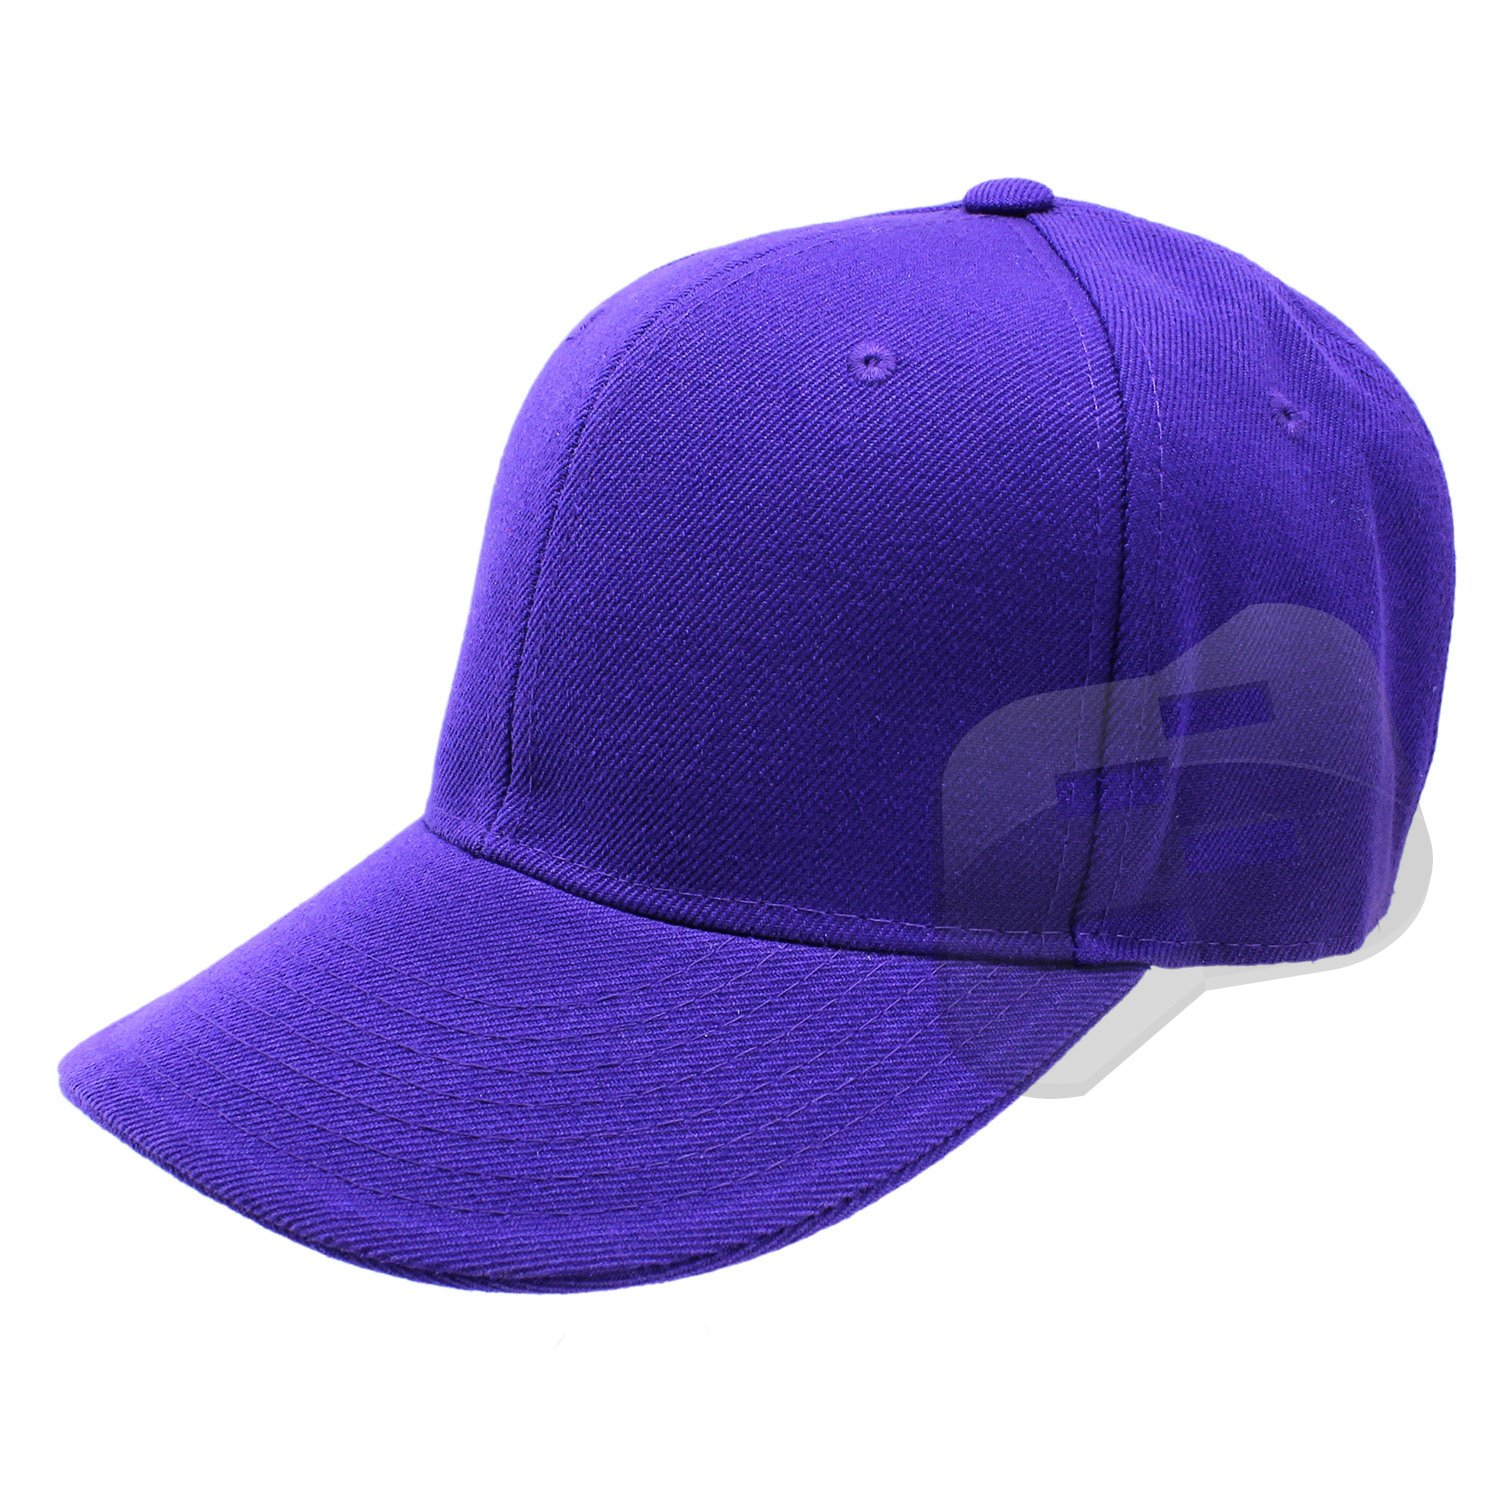 Enimay Baseball Hats Caps Curved Bill Solid Color No Logo Purple 7 5 8 at  Amazon Women s Clothing store  a575e889b76